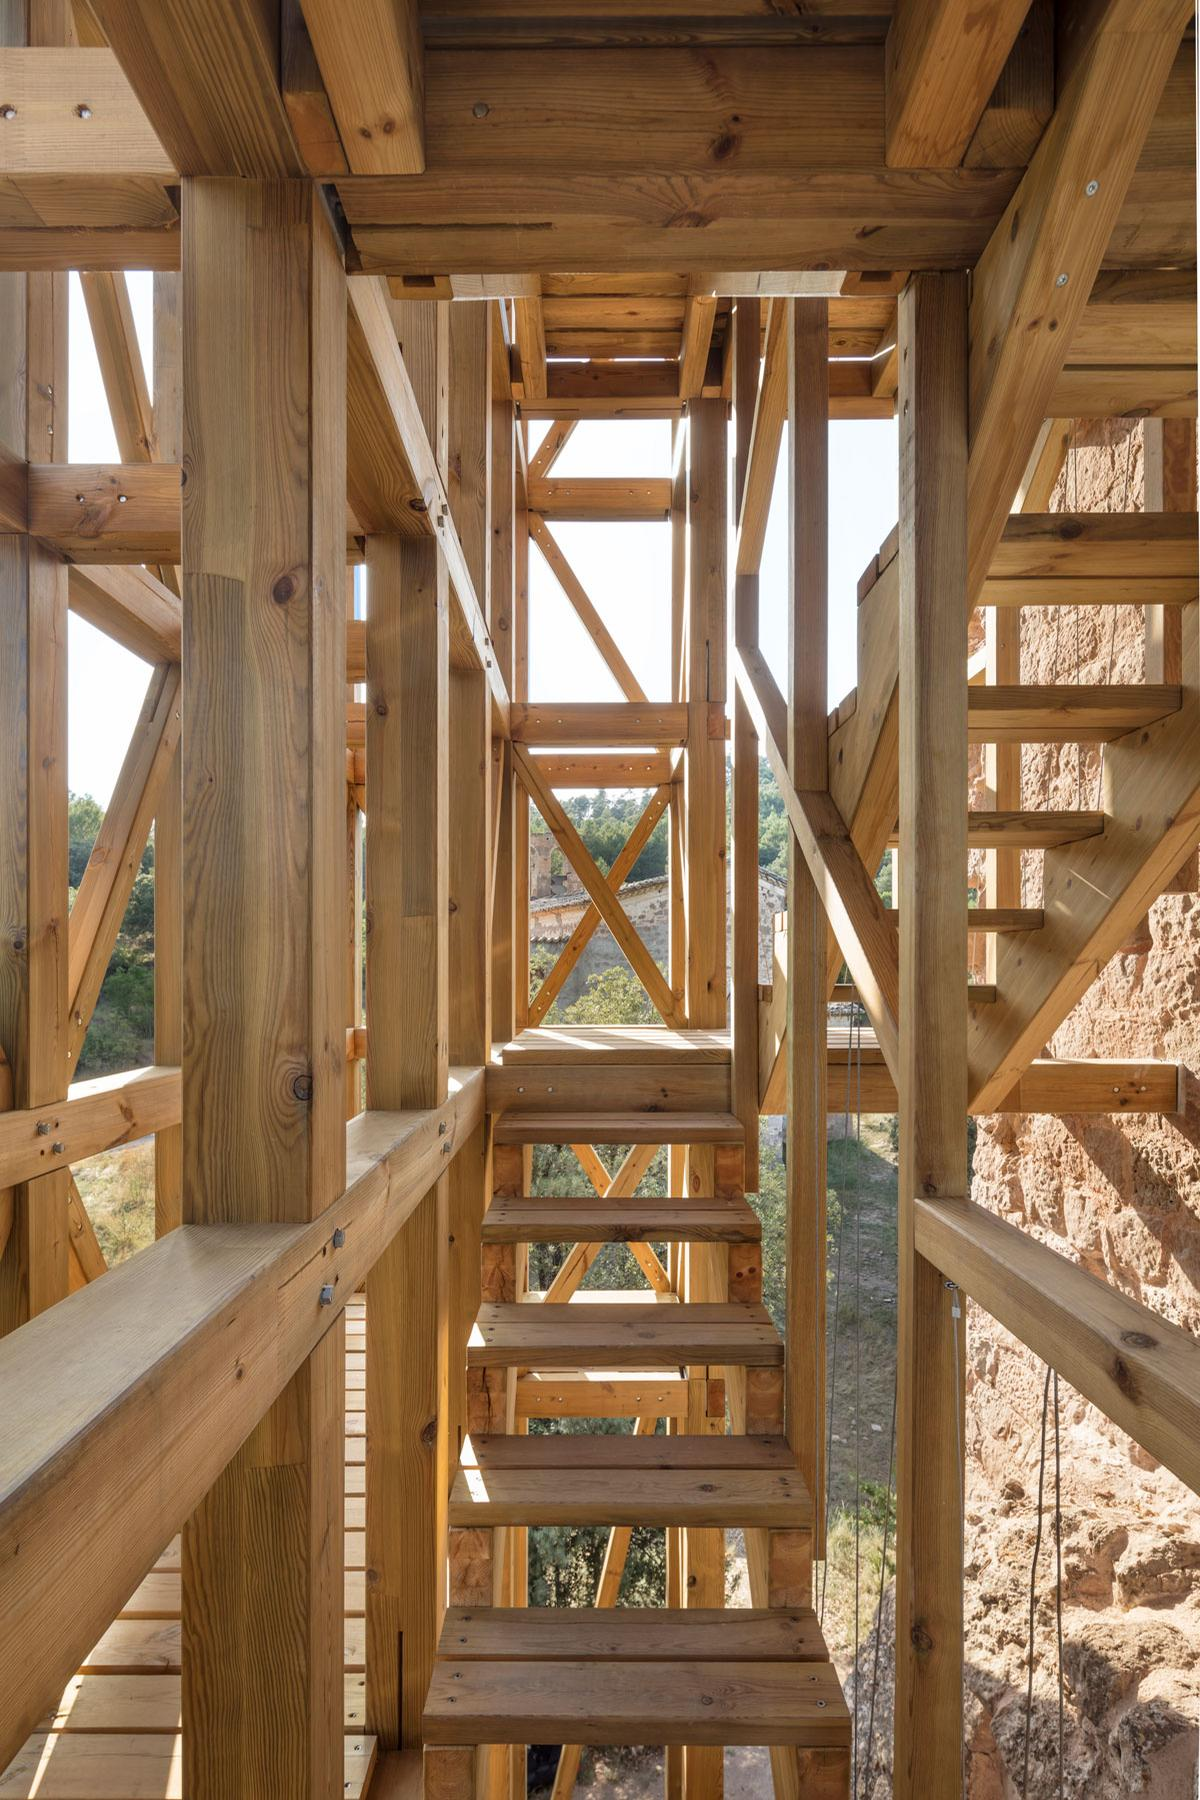 An internal staircase allows visitors to climb the tower / Carles Enrich Studio